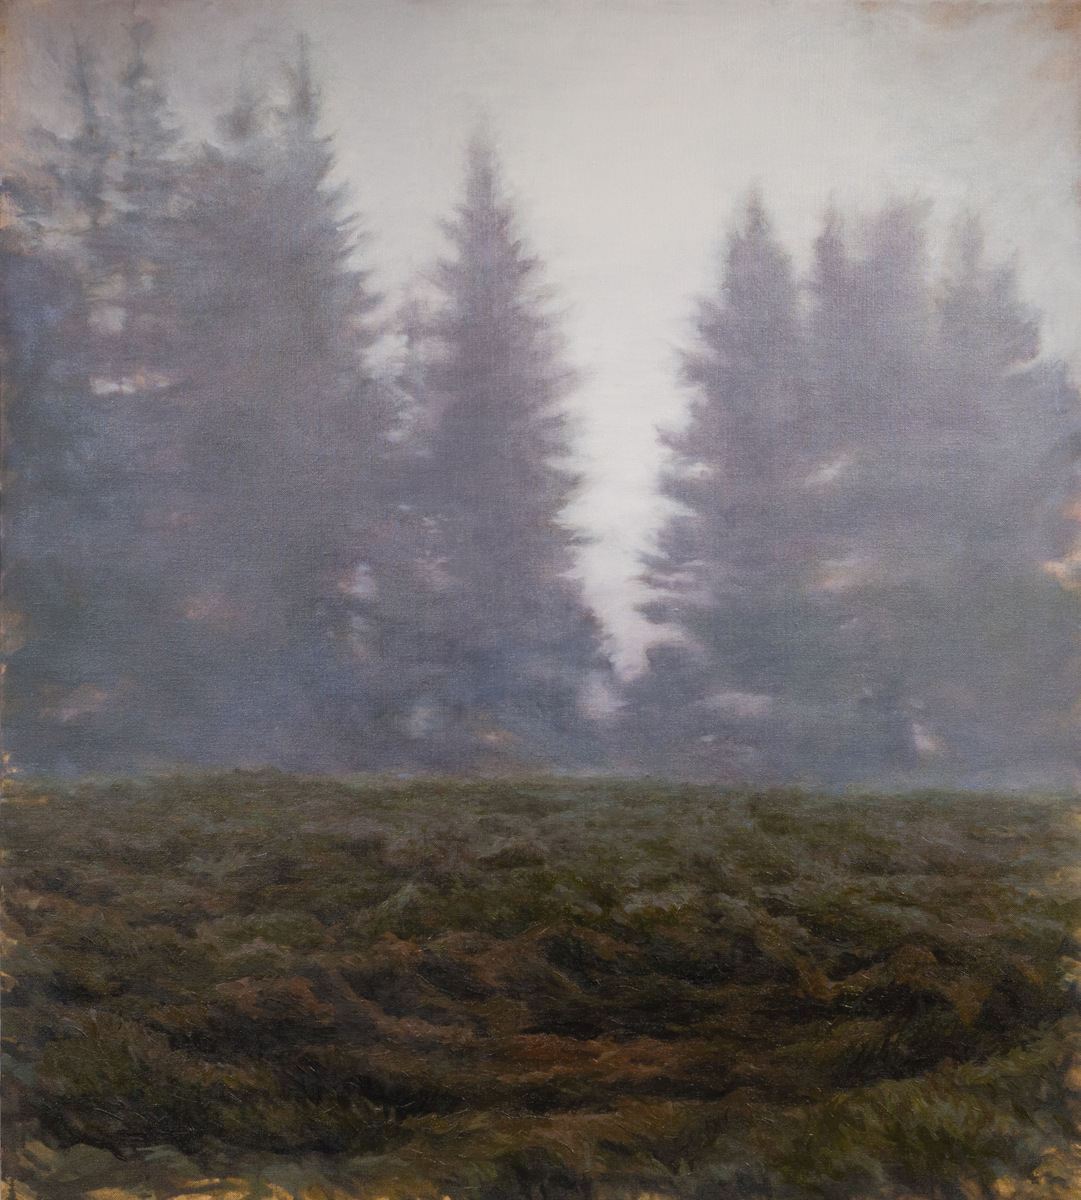 J. Krause Chapeau   Beyond the Conifers   2017`  Oil on linen  Signed and dated by the artist,  verso   40 x 36 inches